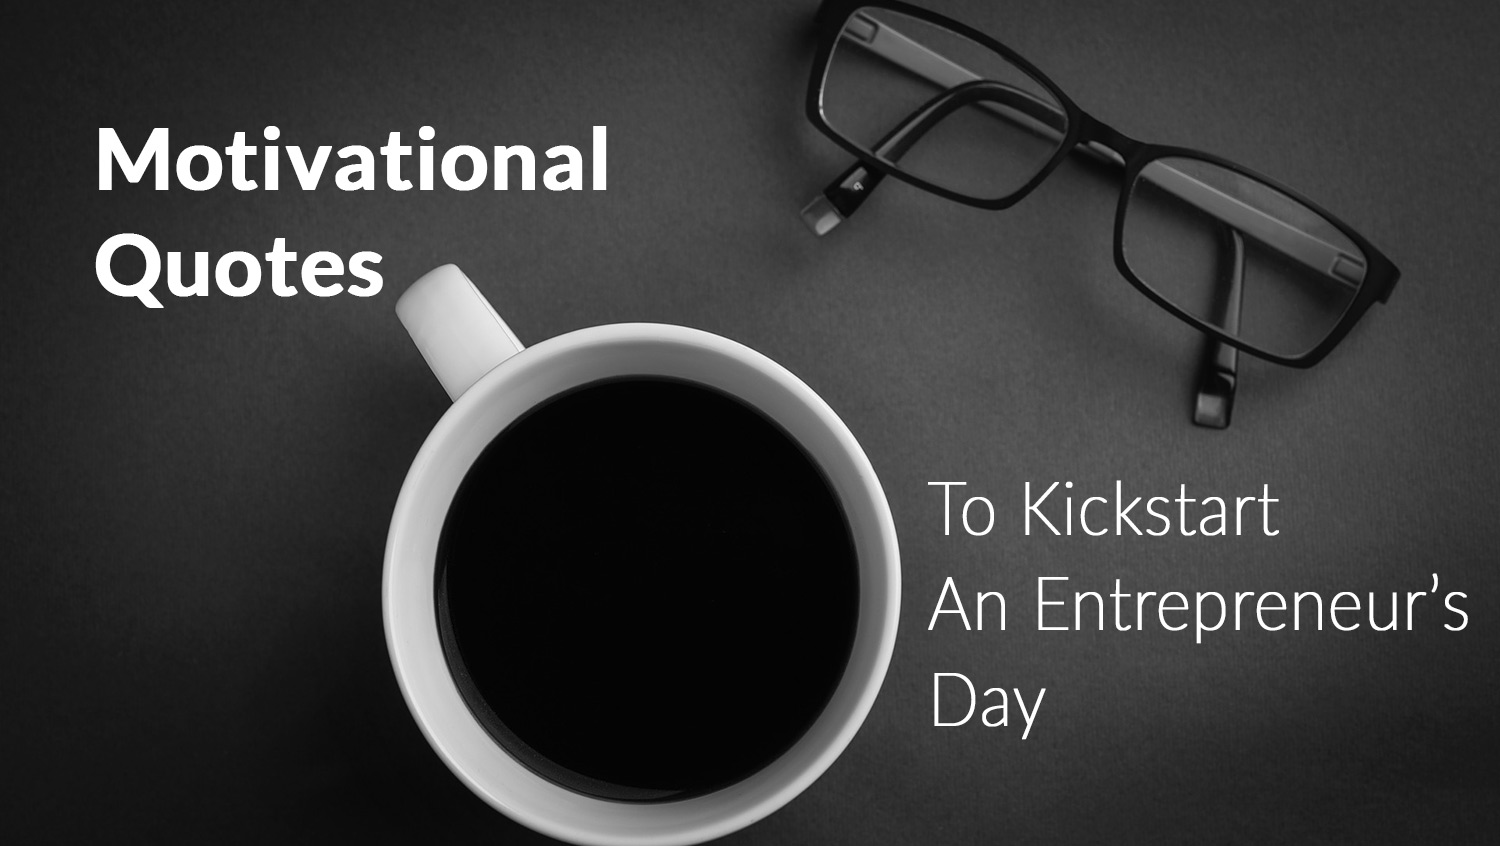 Motivational Quotes To Kickstart An Entrepreneur's Day